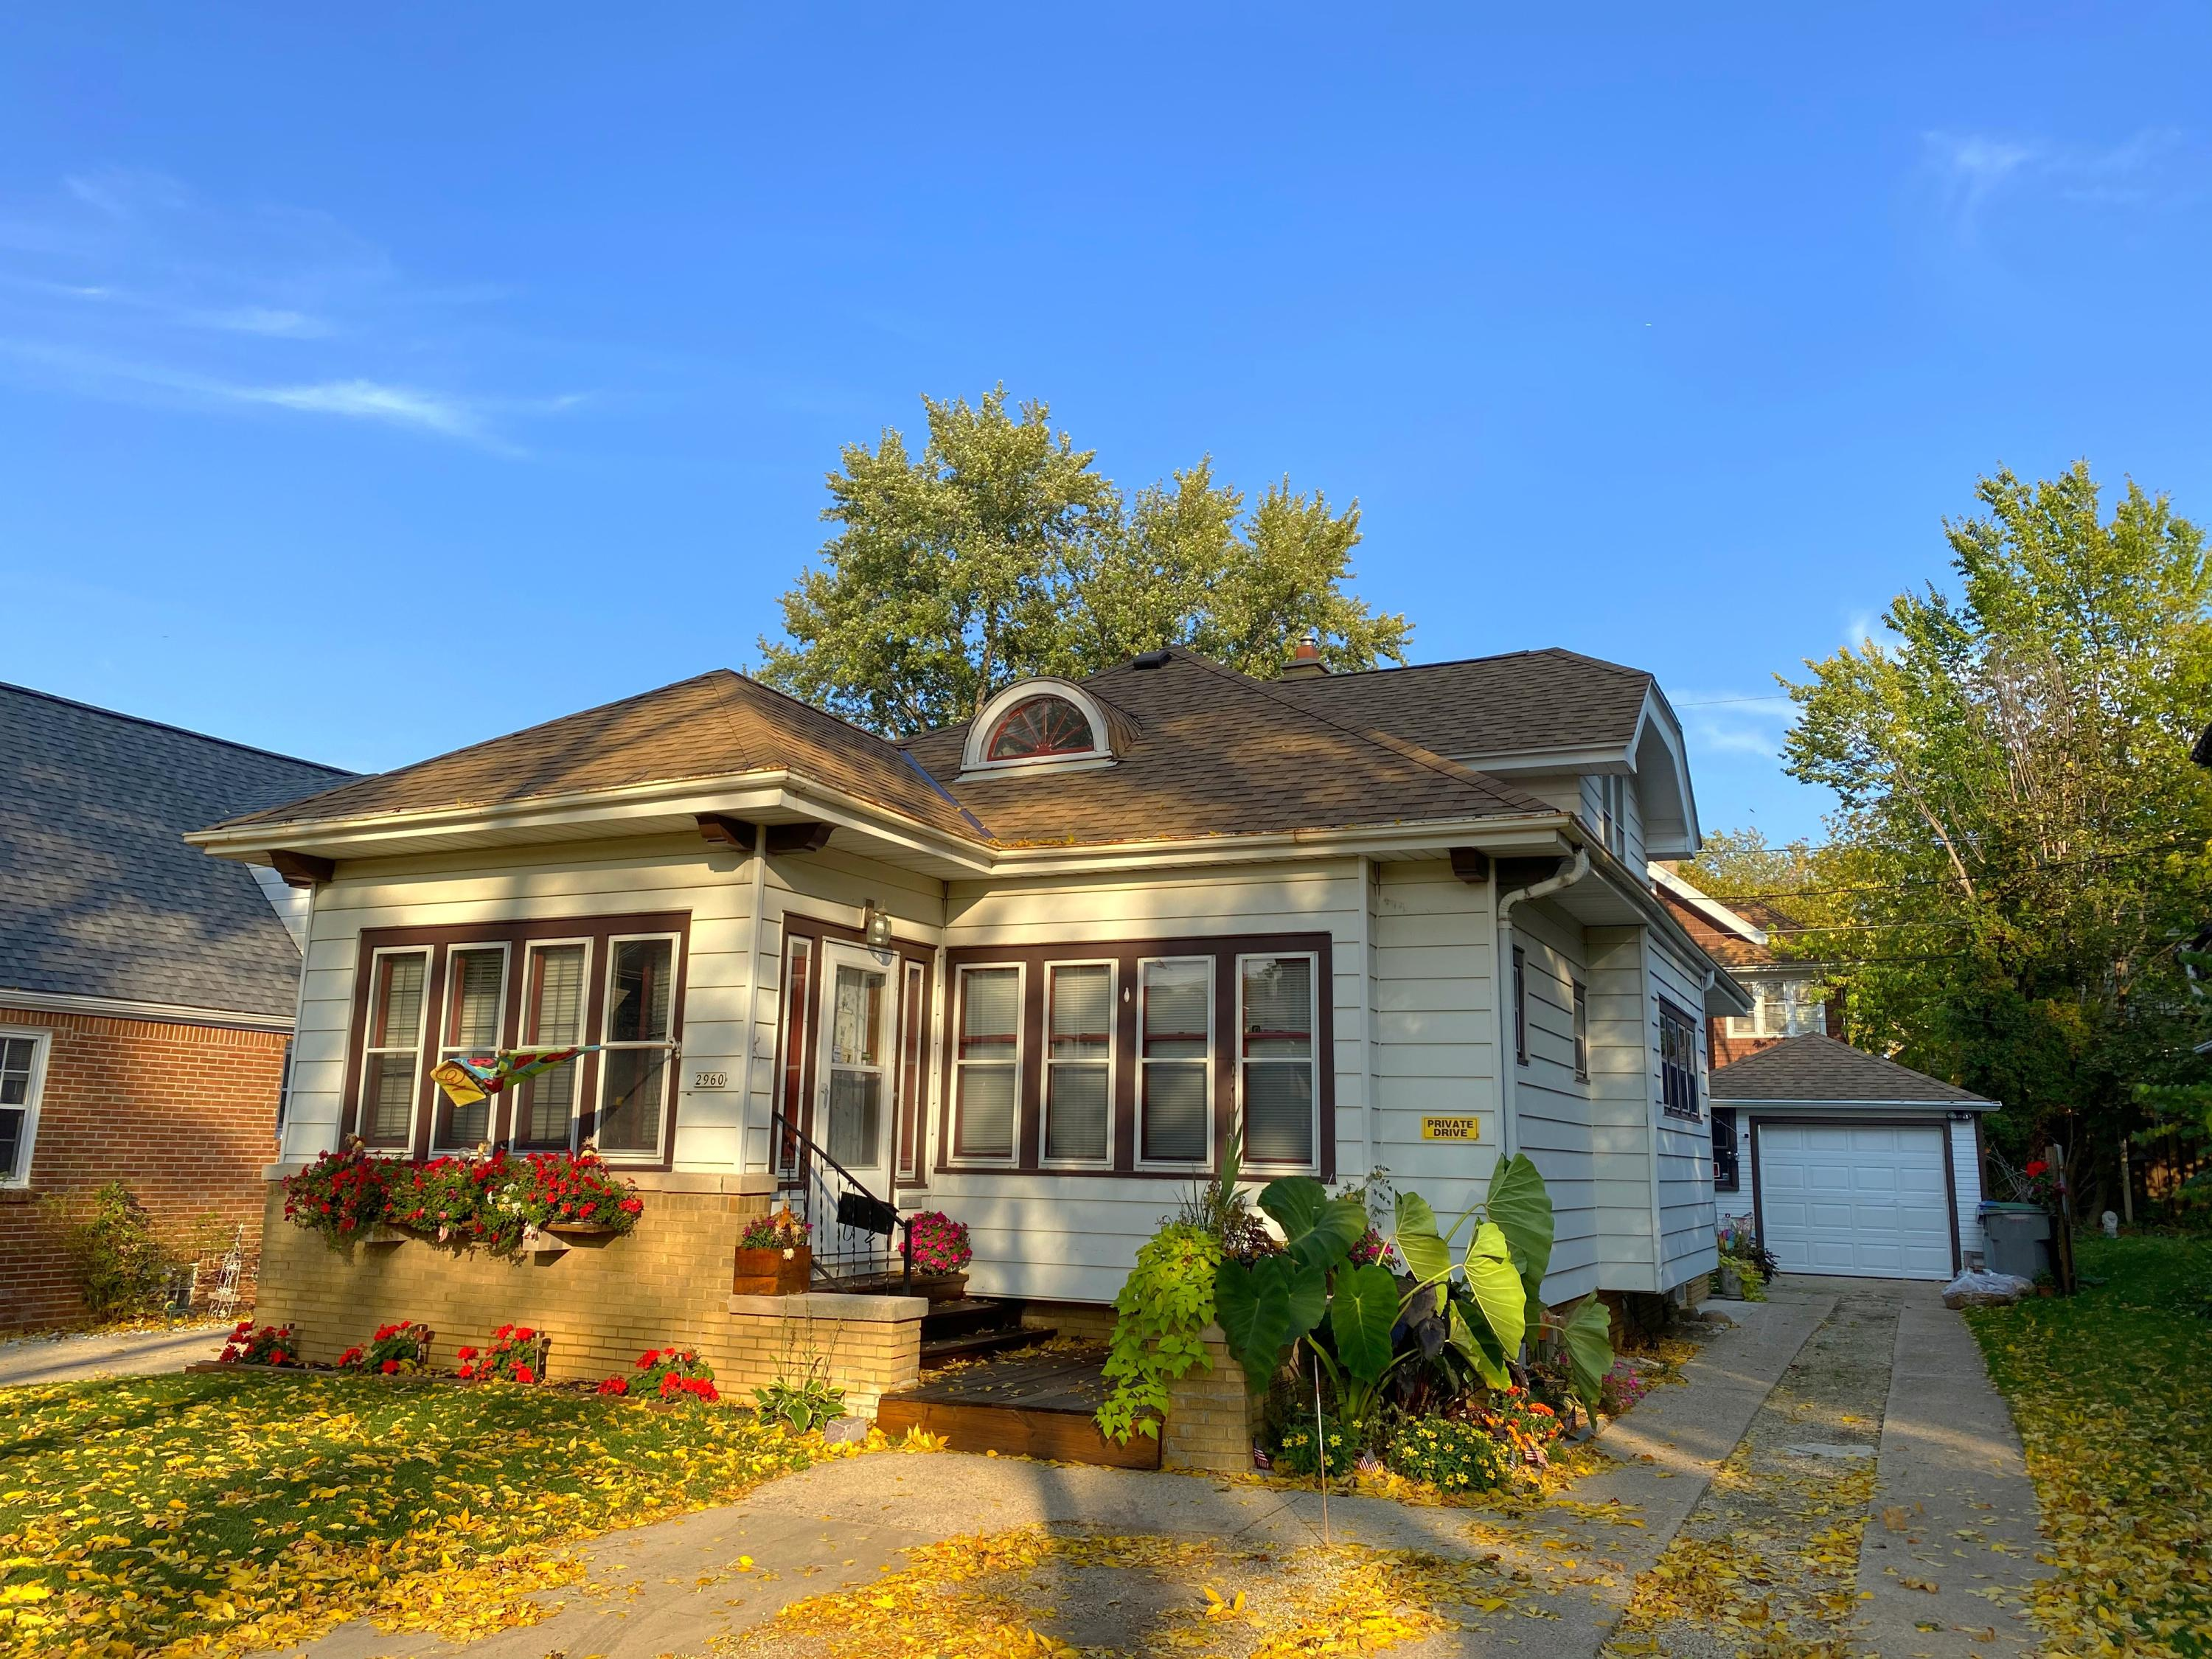 2960 56th St, Milwaukee, Wisconsin 53210, 3 Bedrooms Bedrooms, ,1 BathroomBathrooms,Single-family,For Sale,56th St,1714180